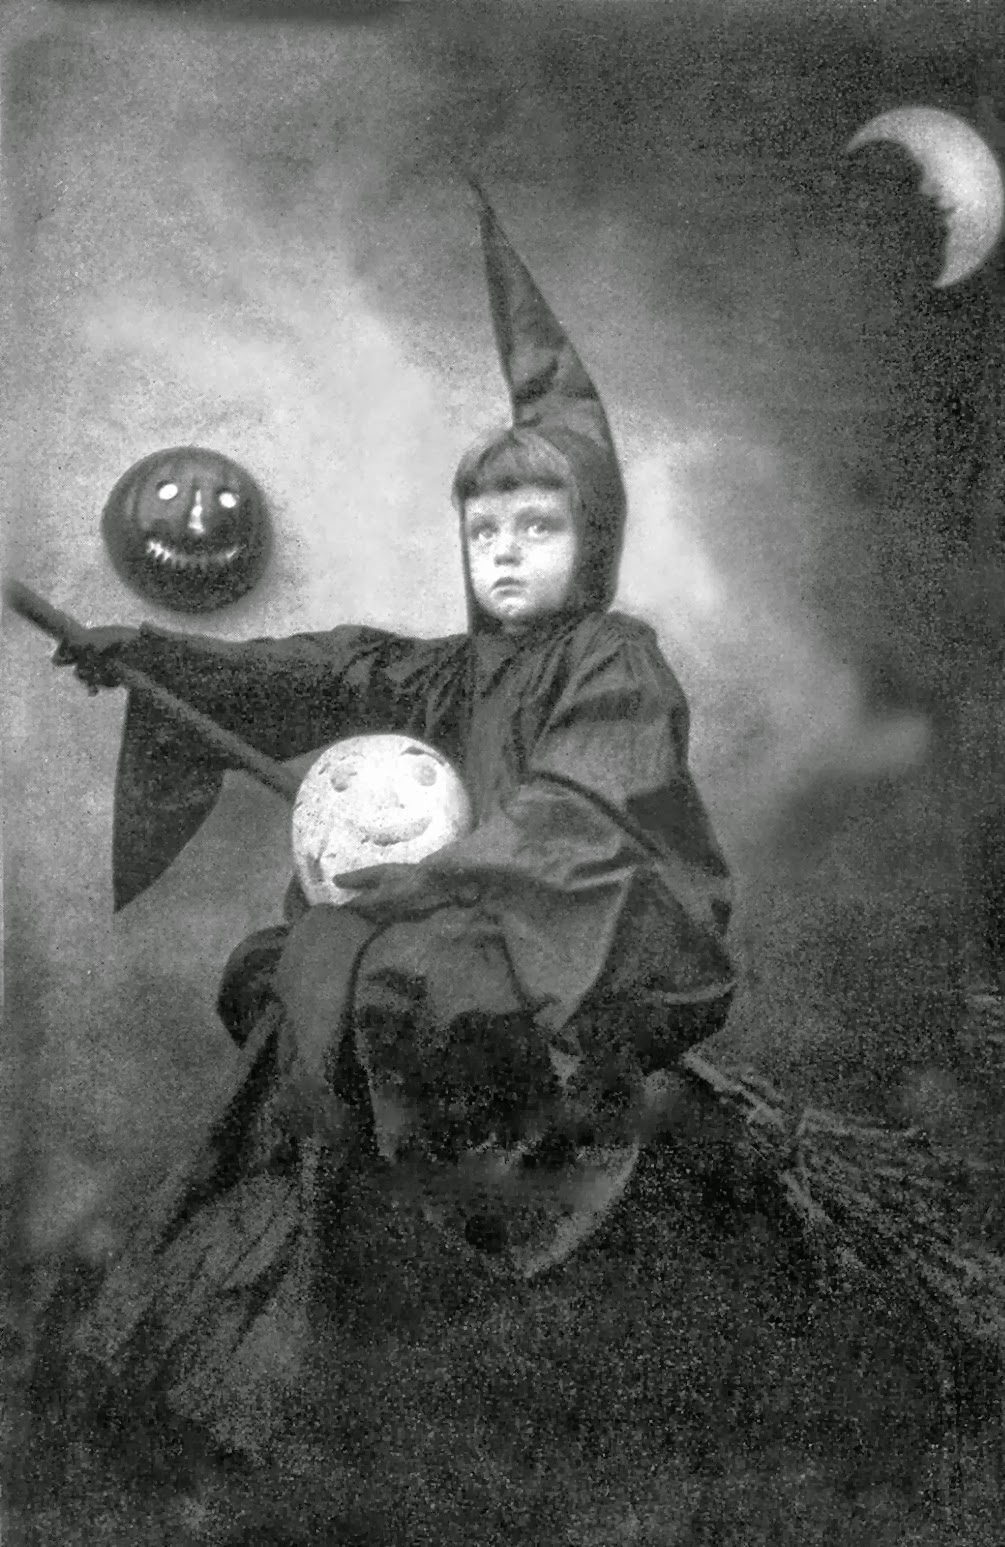 vintage photos of funny halloween costumes from between the 1900s vintage photos of funny halloween costumes from between the 1900s - Halloween Costumes 1900